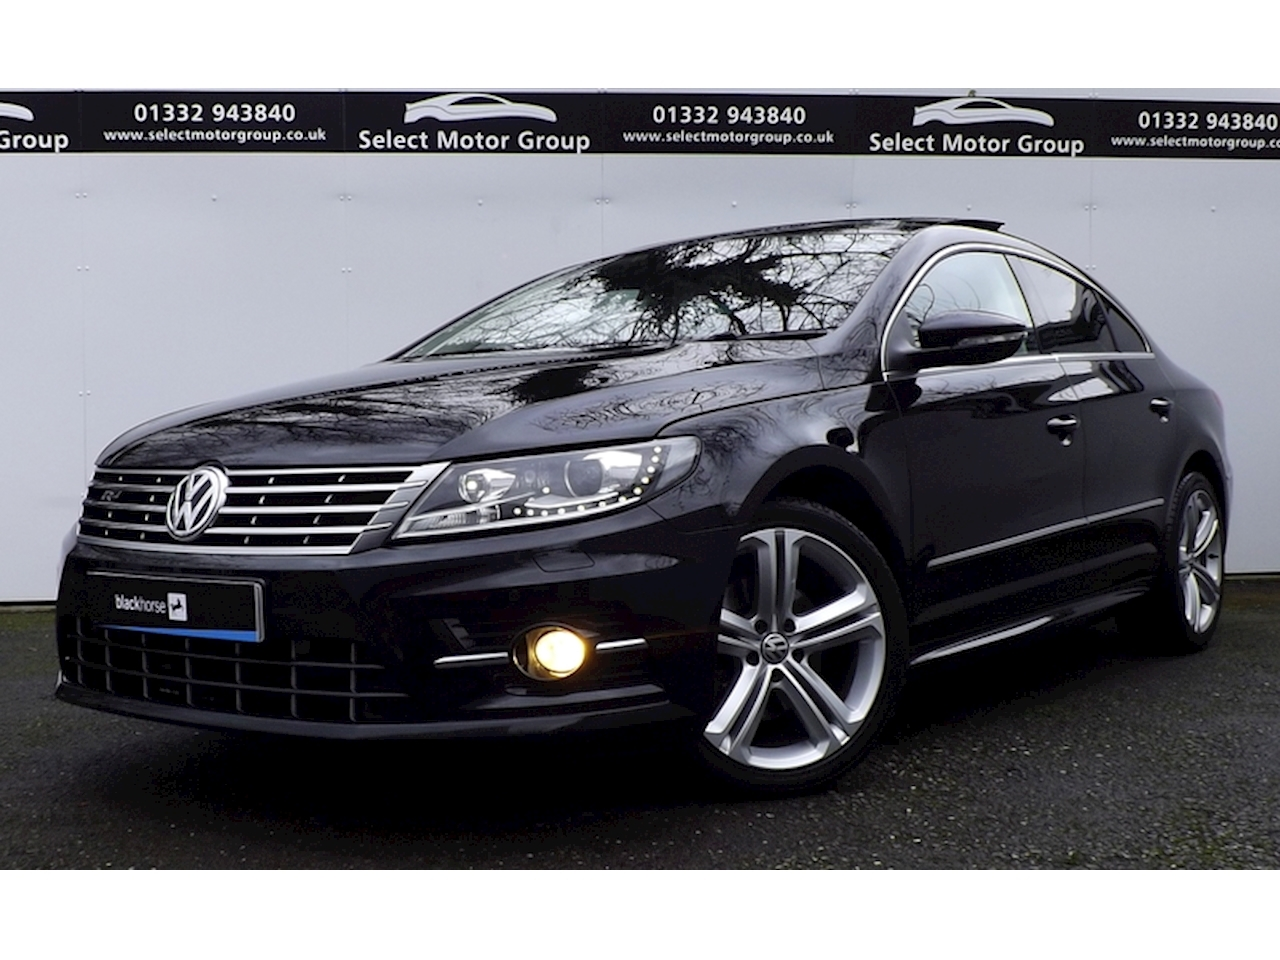 CC 2.0 TDI 184 R Line Bluemotion Technology DSG 4dr Coupe Semi Auto Diesel